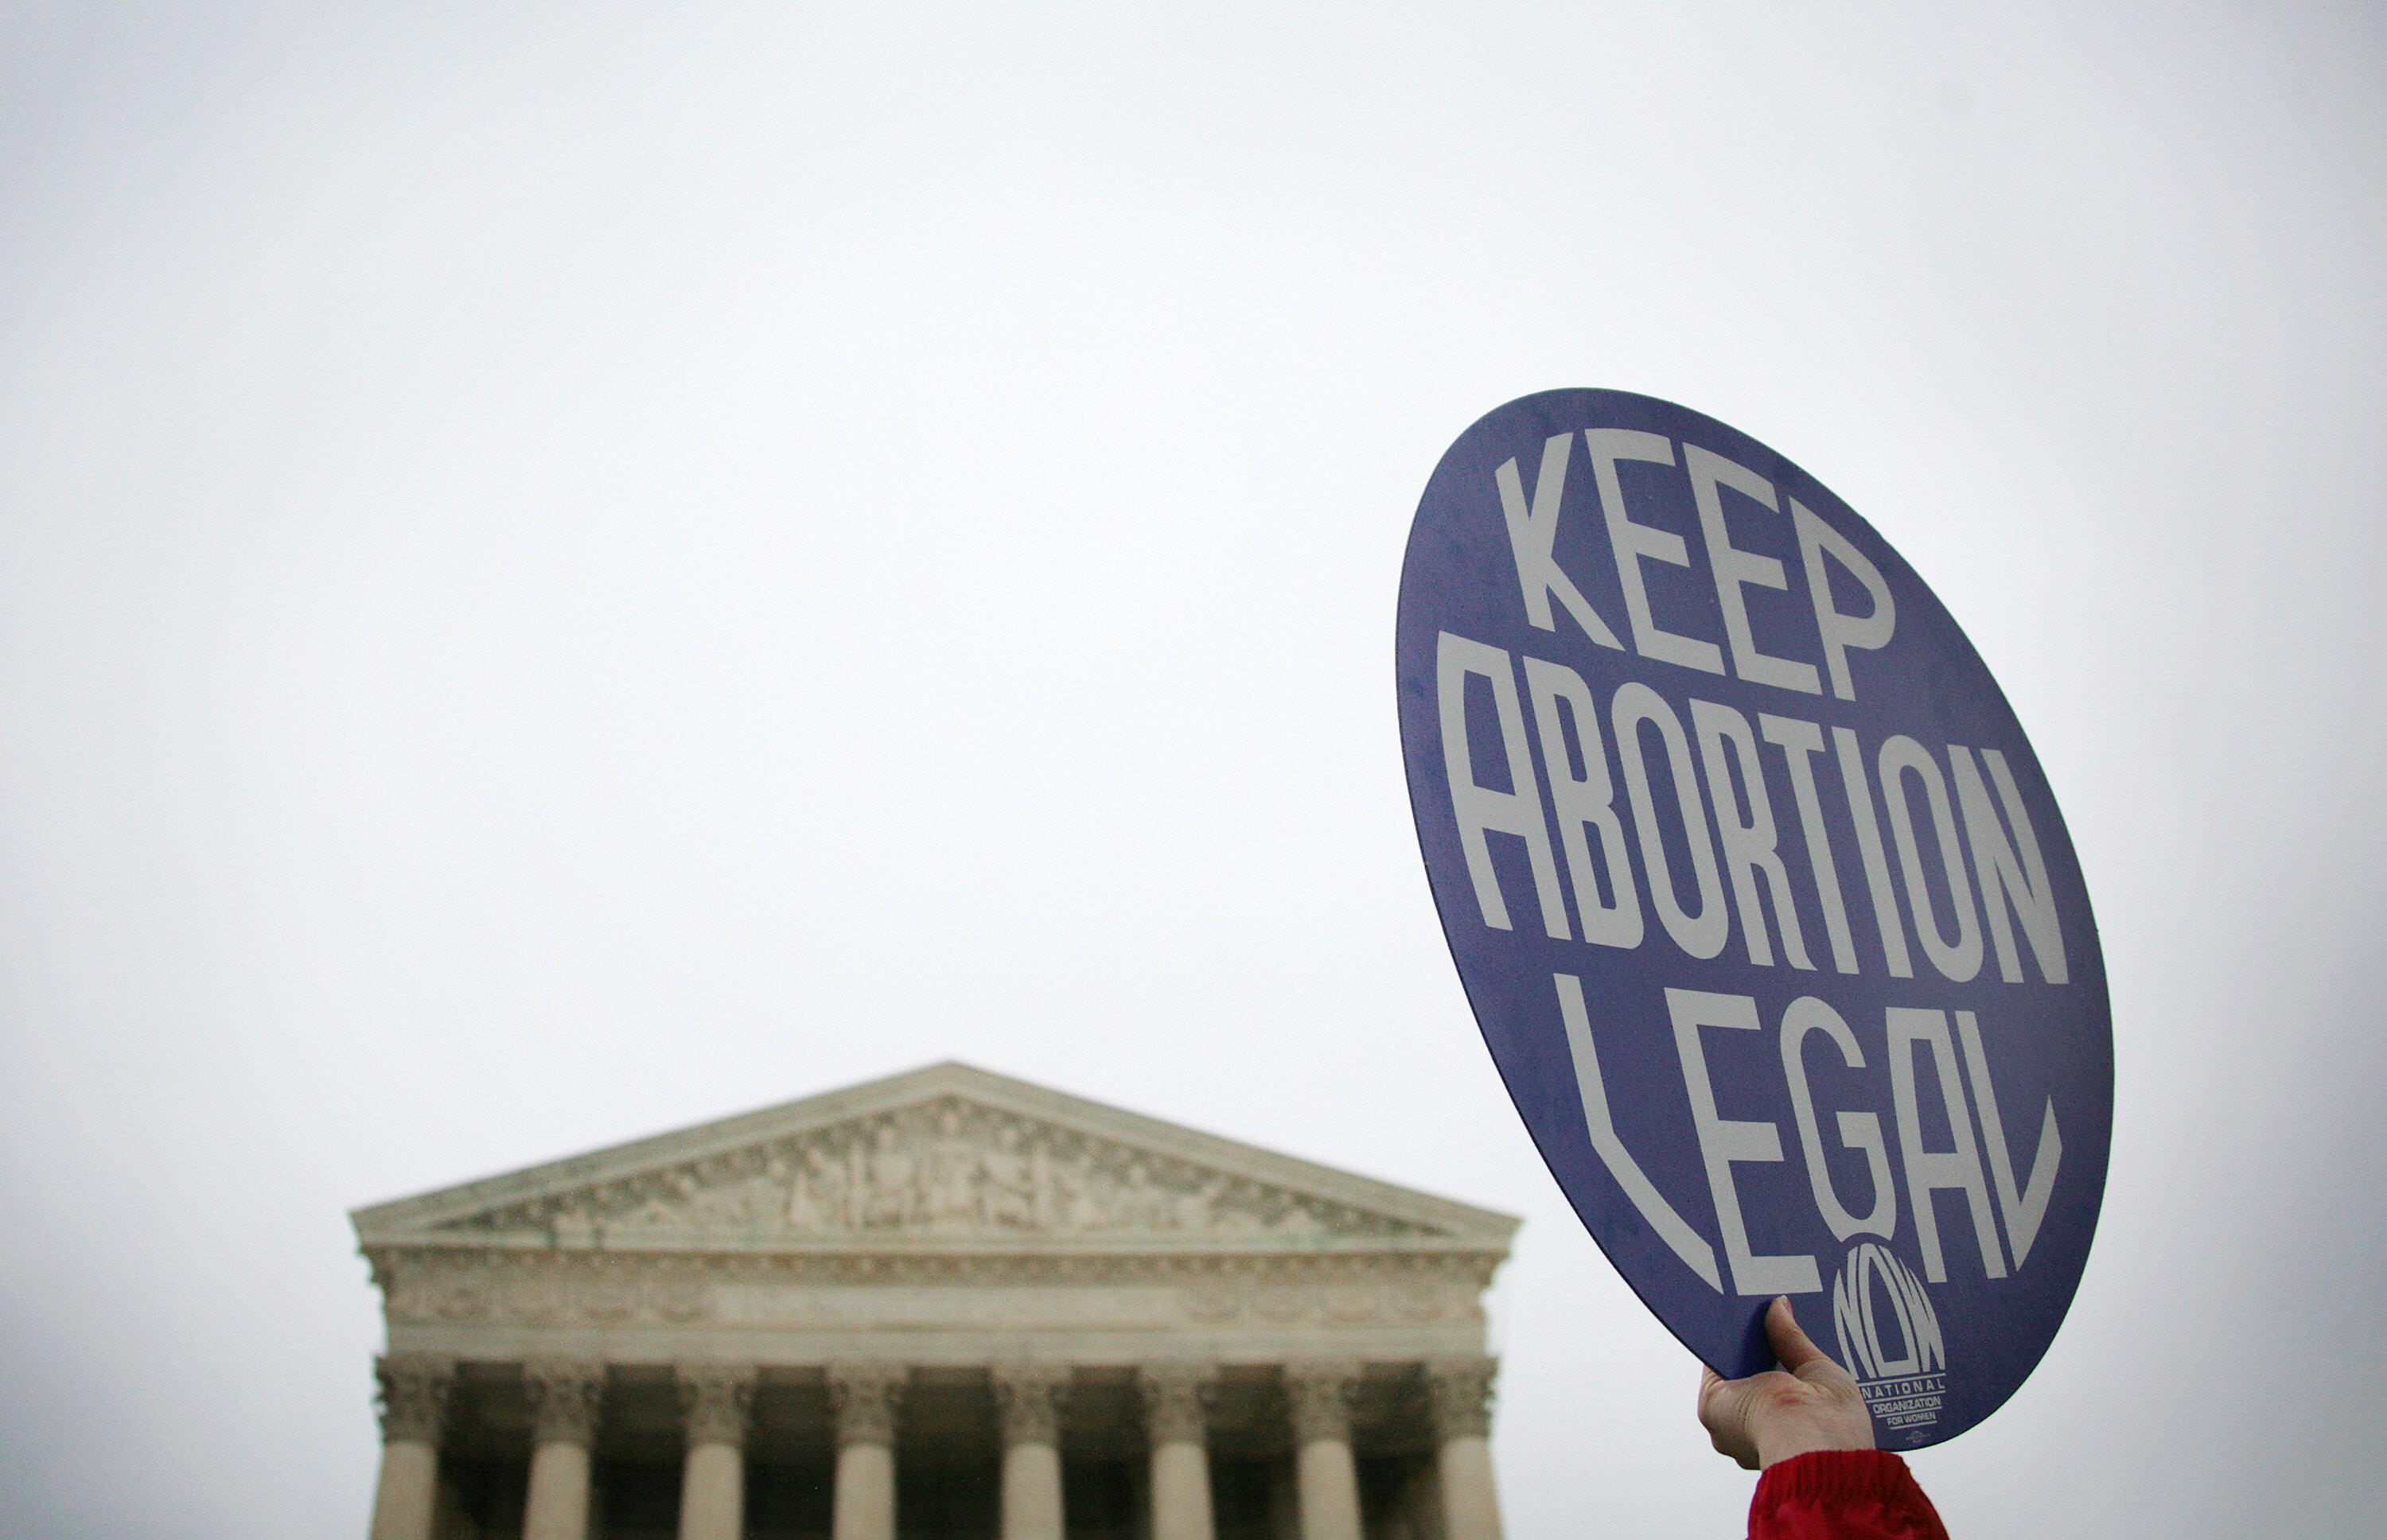 USA top court faces test case on abortion rights